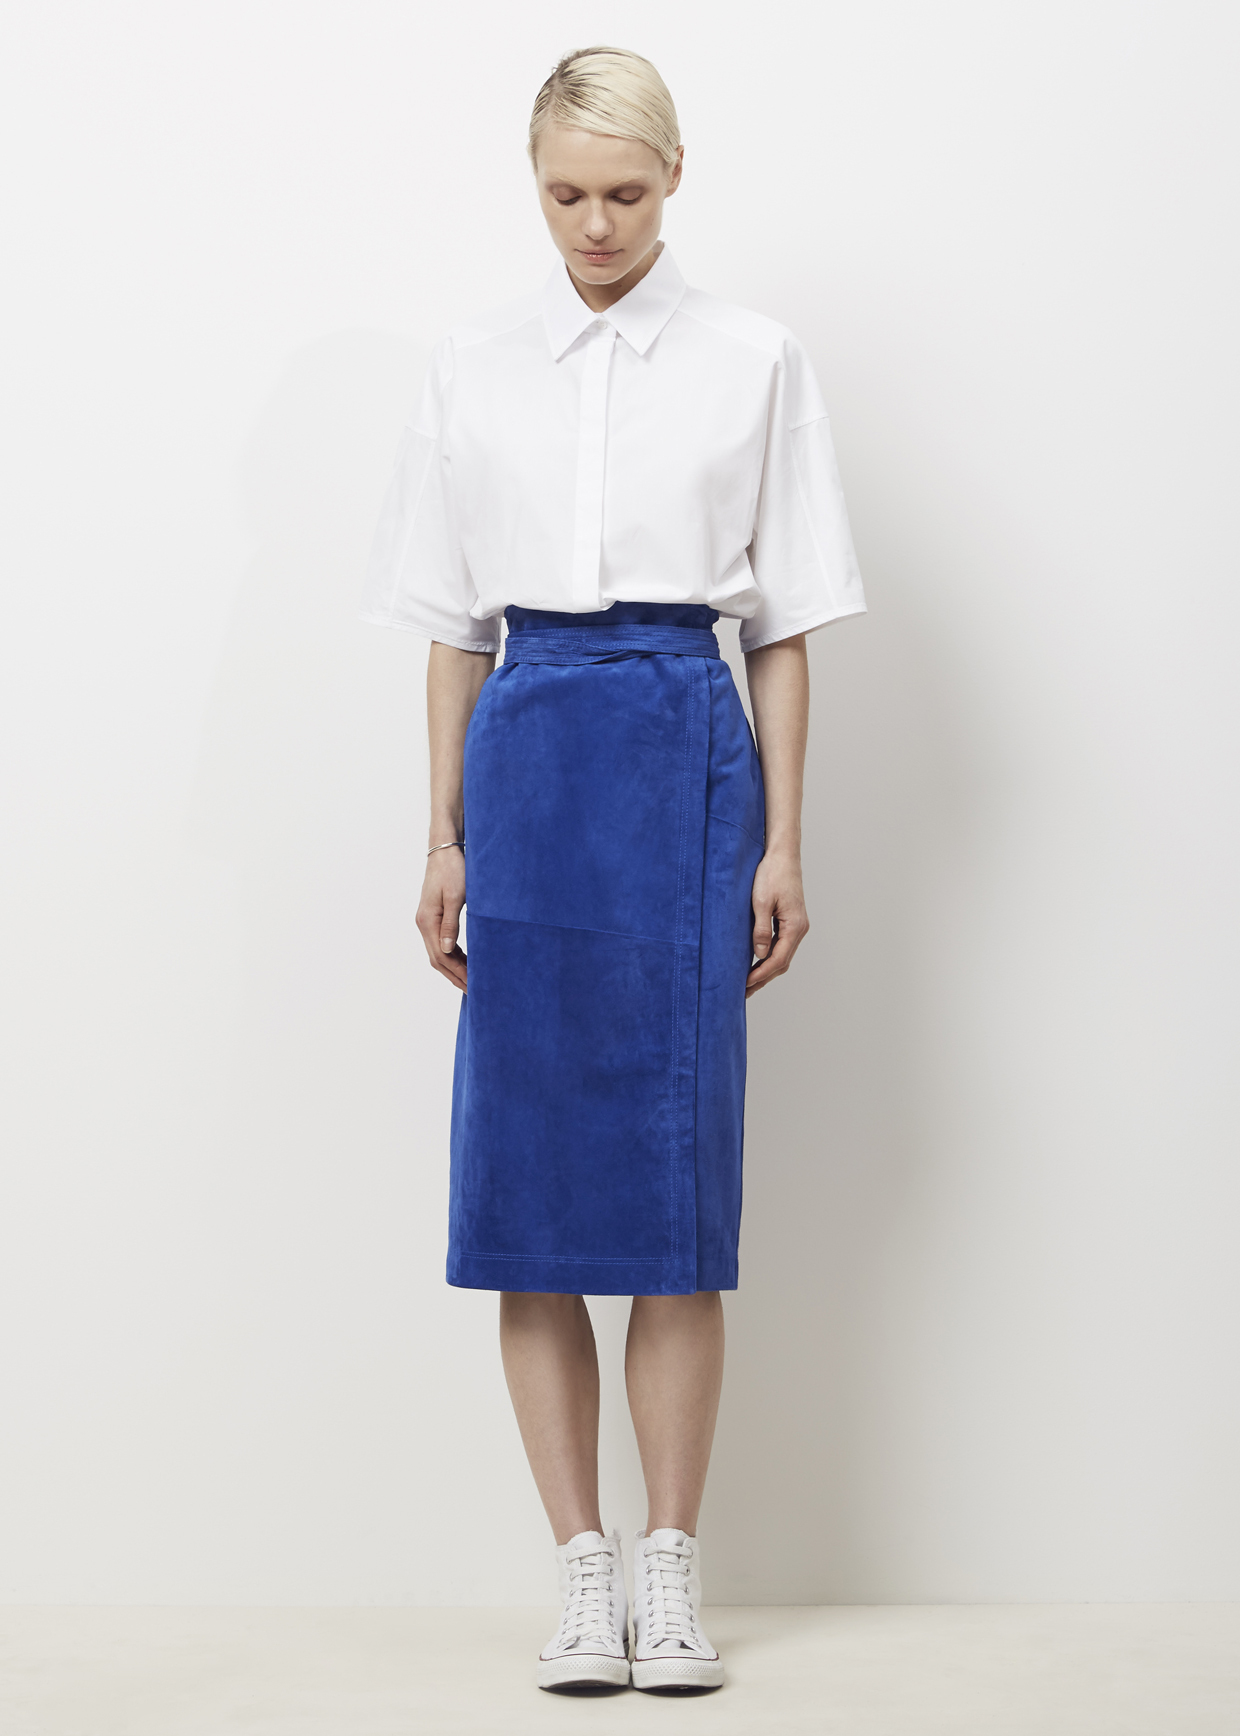 Jil sander Royal Ascerabalh Suede Skirt in Blue | Lyst